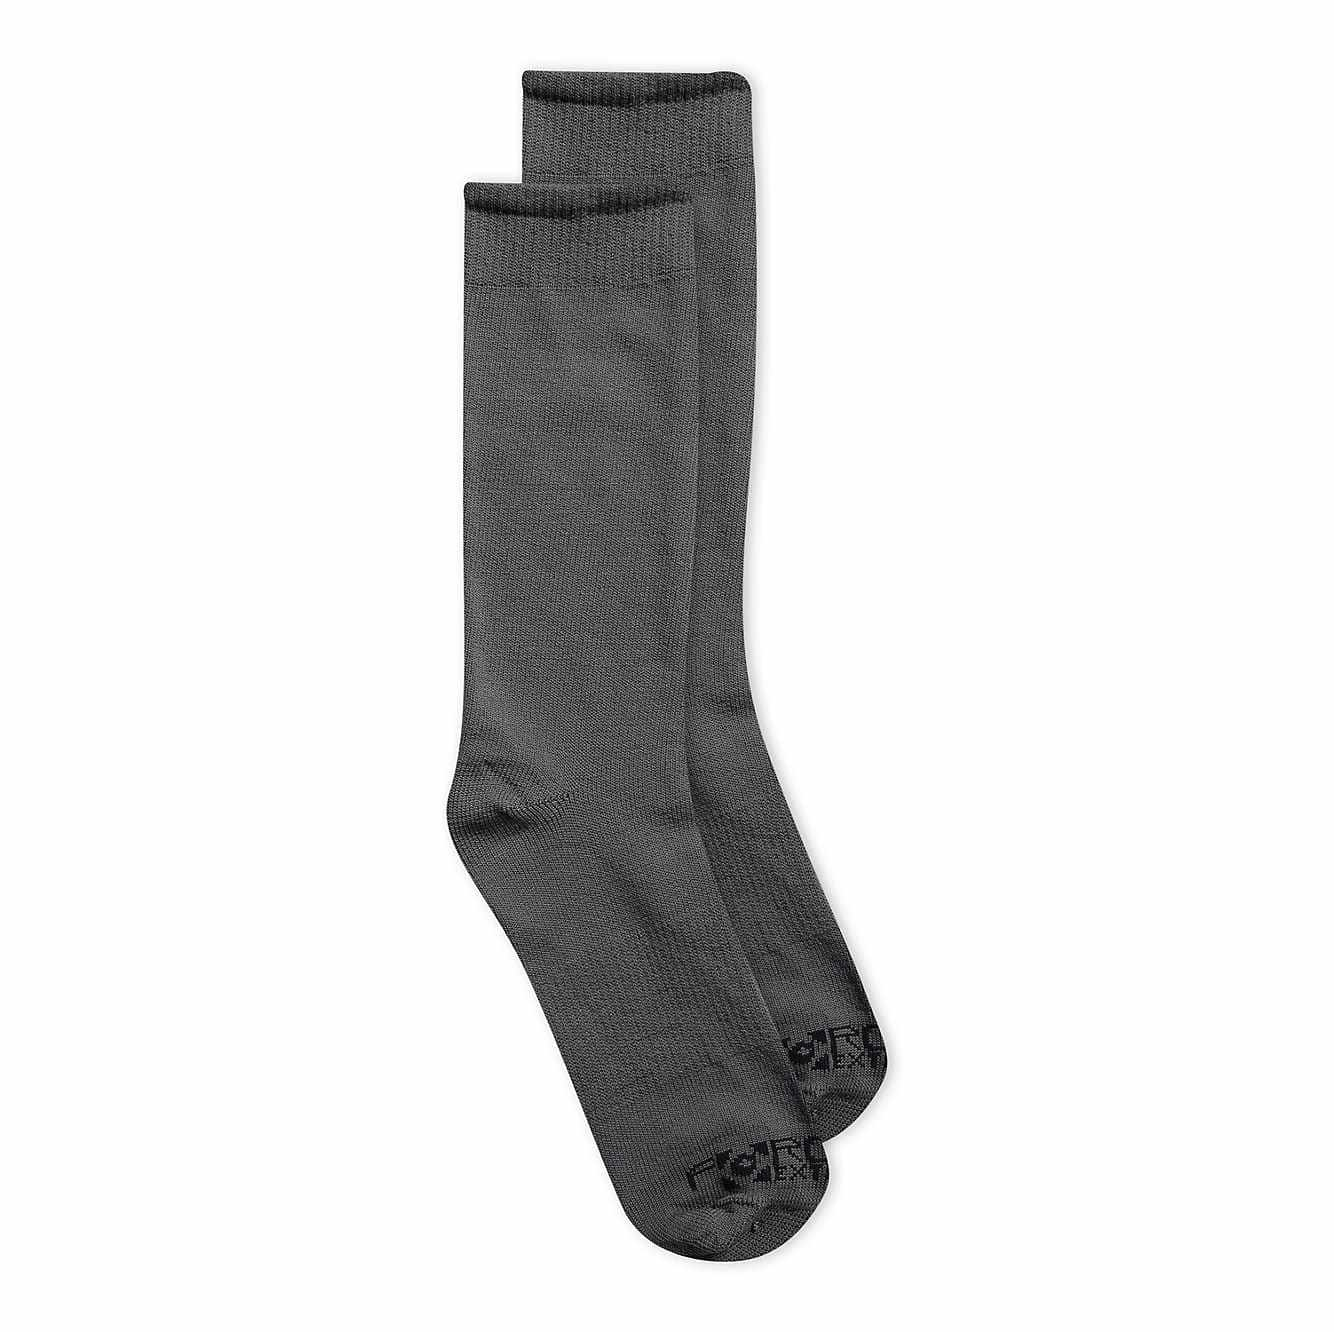 Picture of Force® Base Layer Liner Crew Sock 3 Pack in Gray